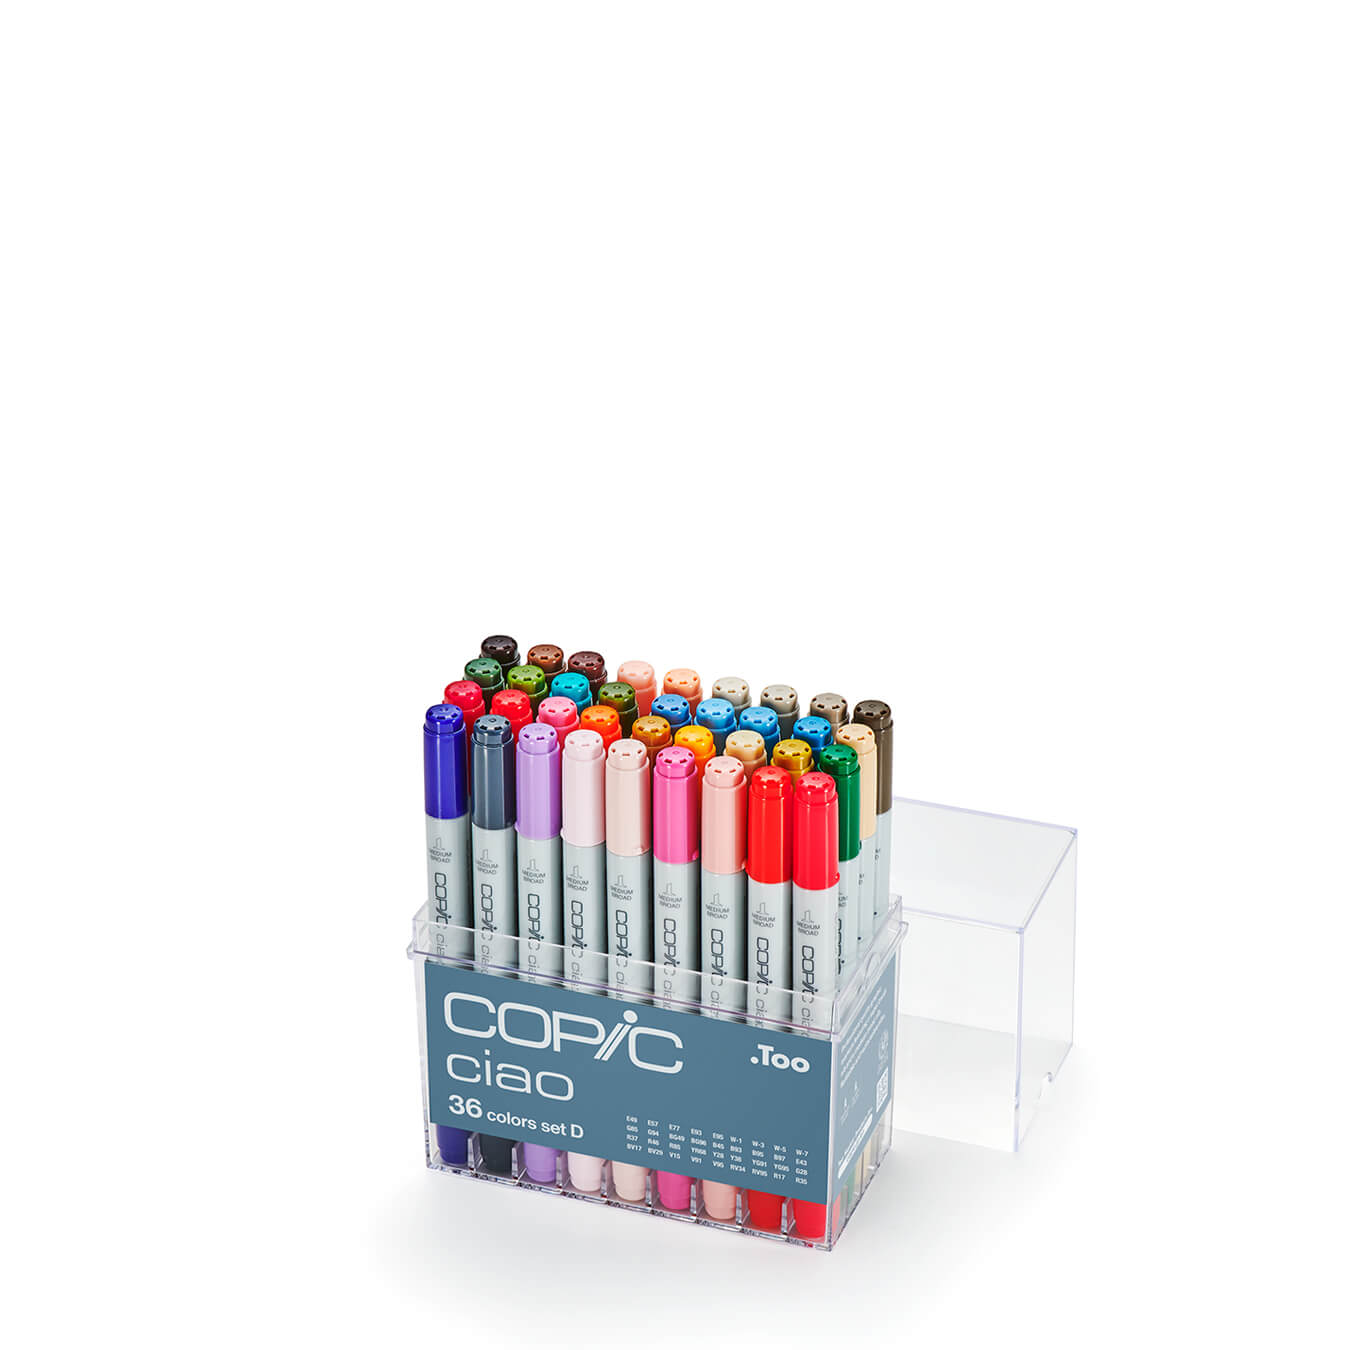 Copic Ciao 36 colors set D